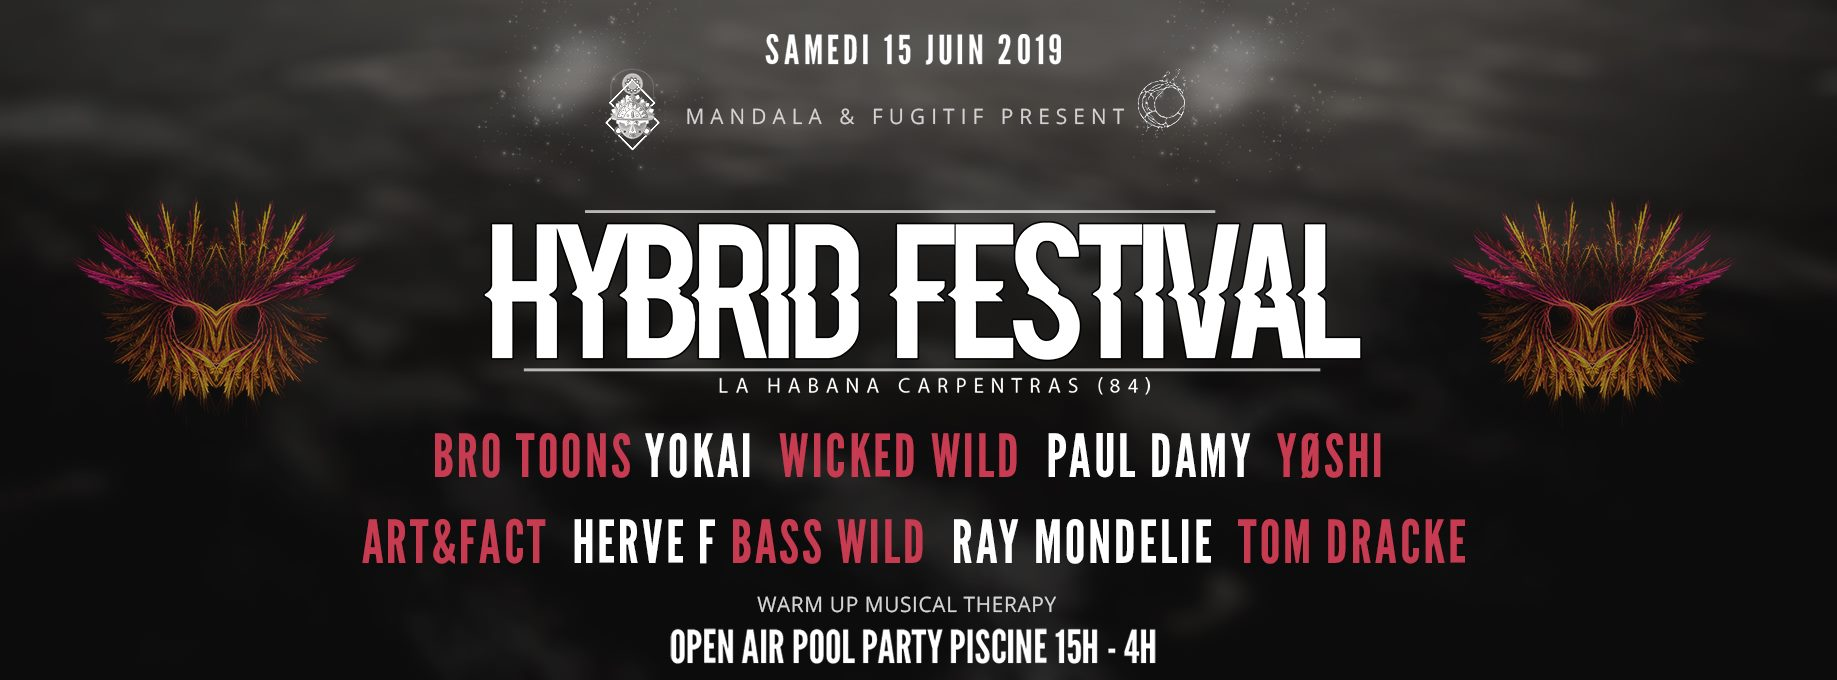 Hybrid Festival Open Air Pool Party